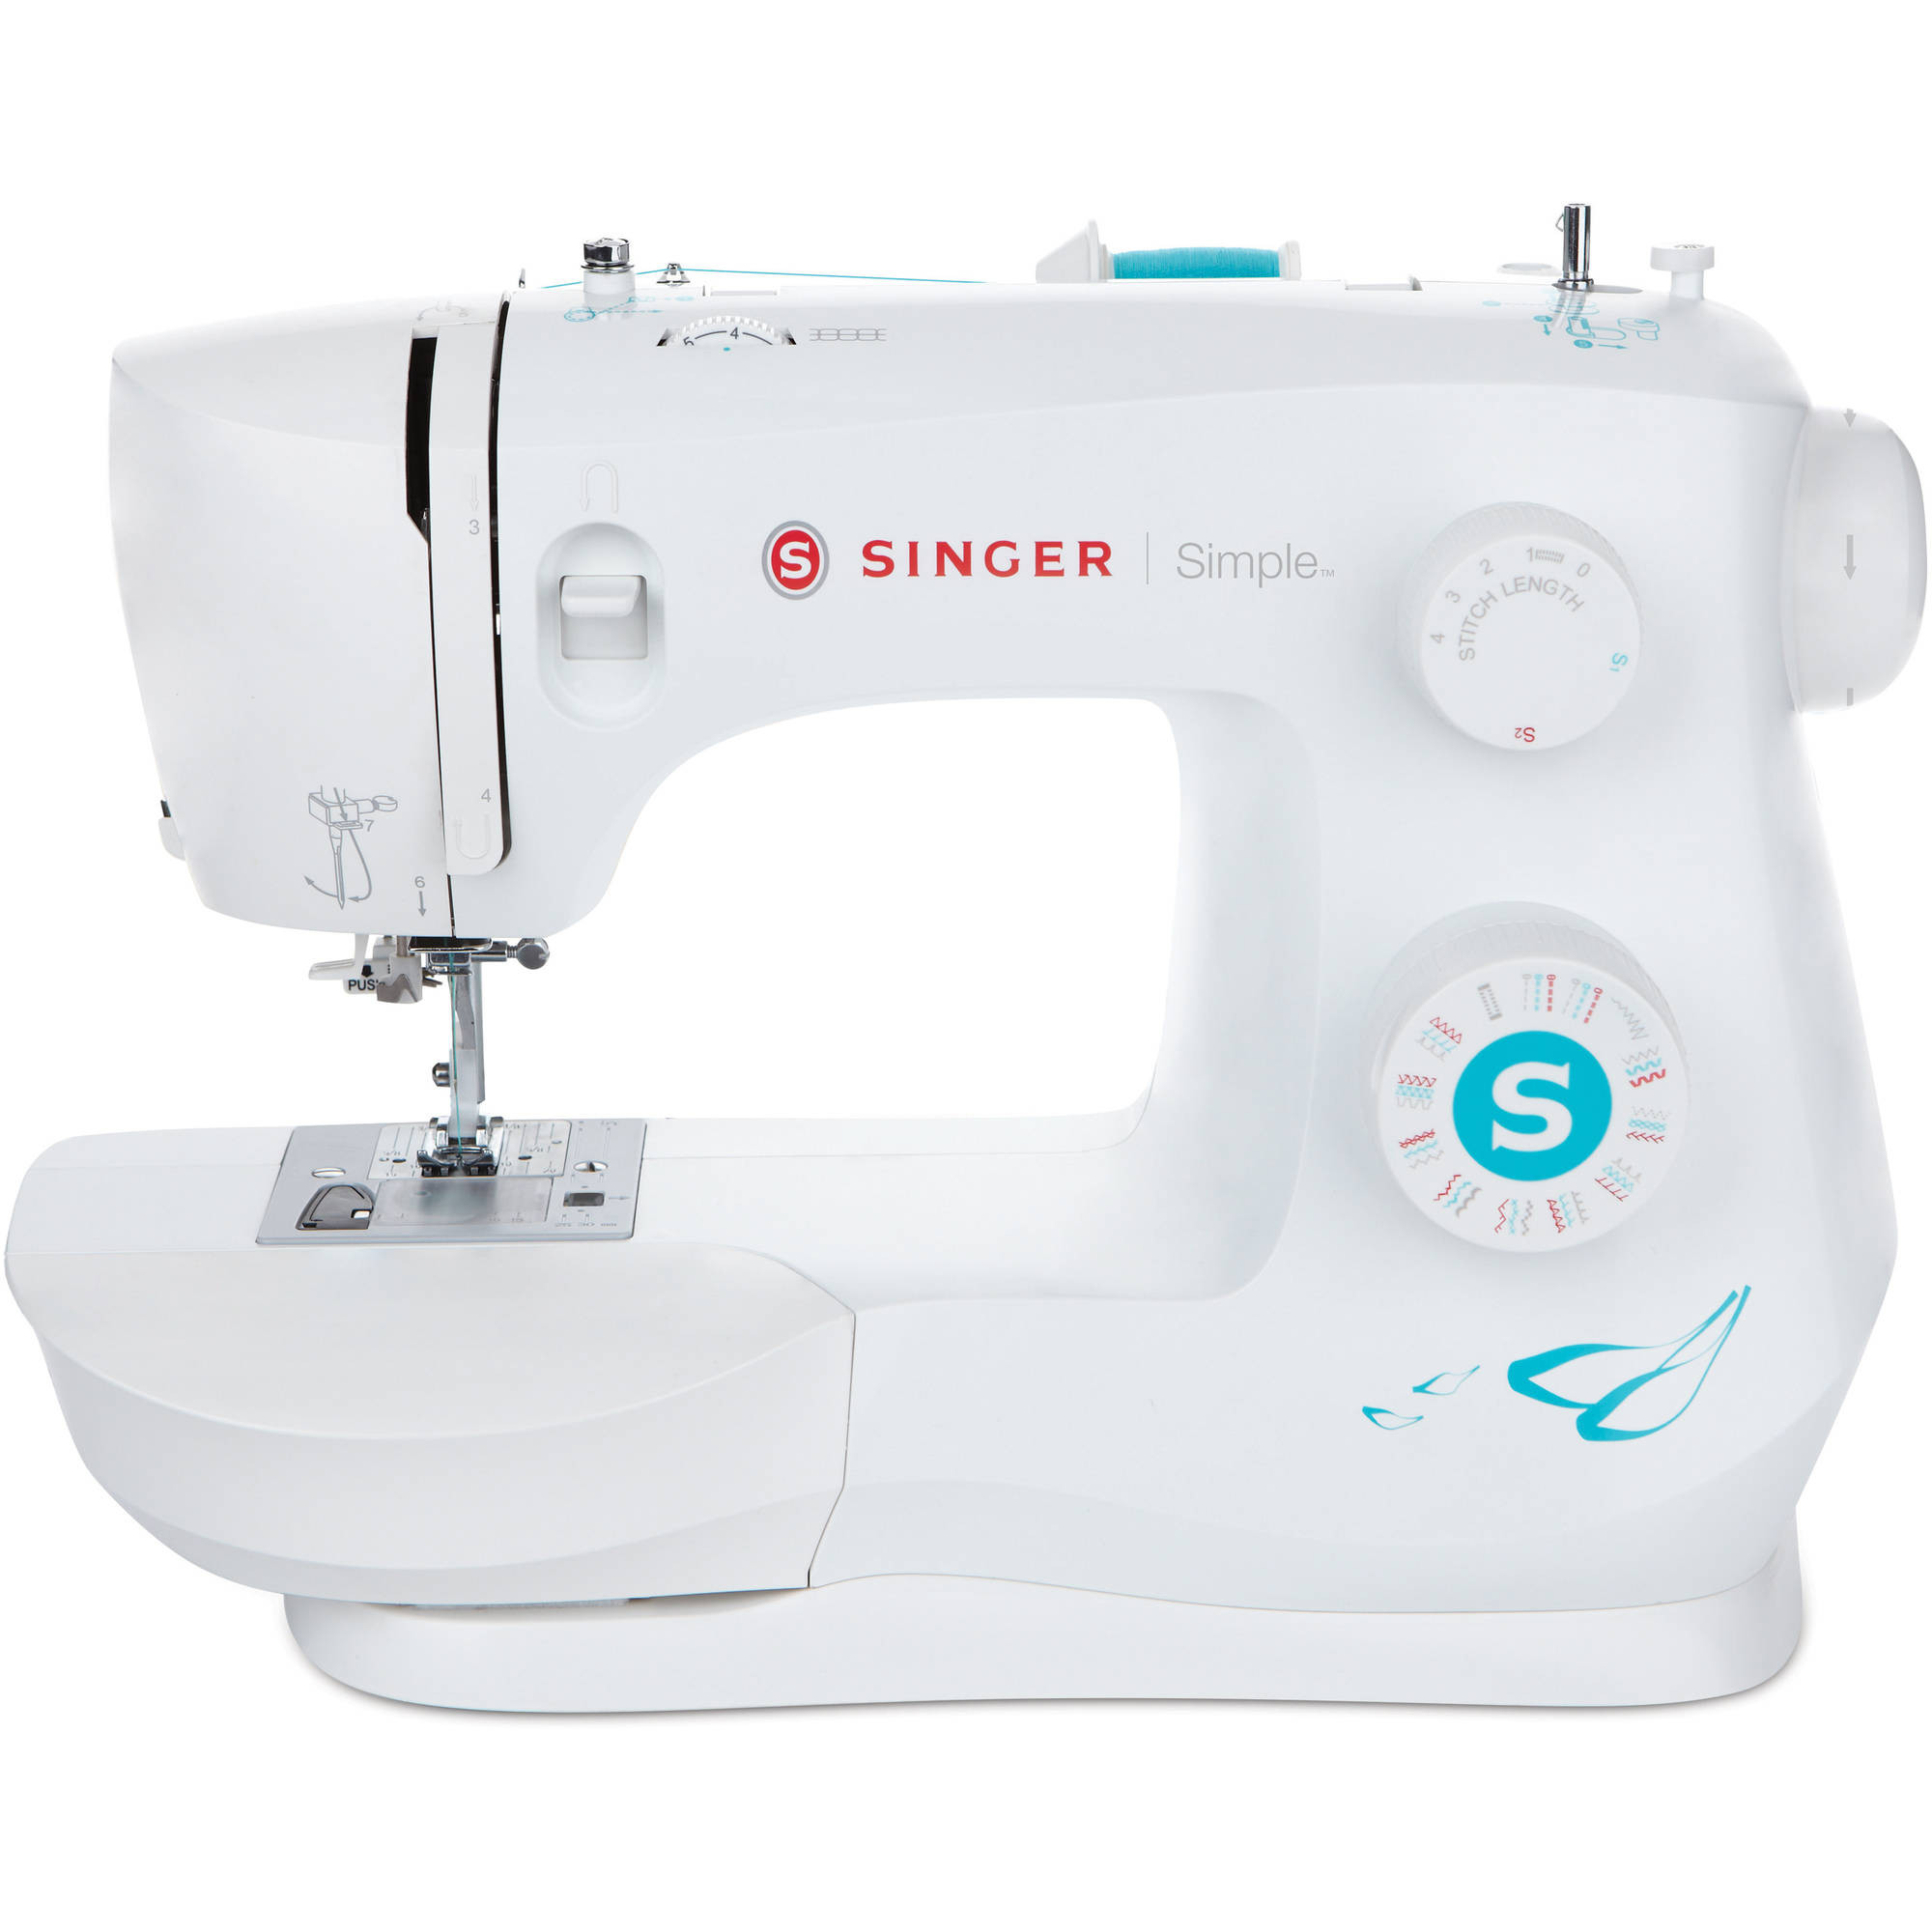 Elegant Singer 3337 Simple 29 Stitch Sewing Machine with Sew Easy Singer Sewing Machine Feet Of Amazing 50 Pics Singer Sewing Machine Feet